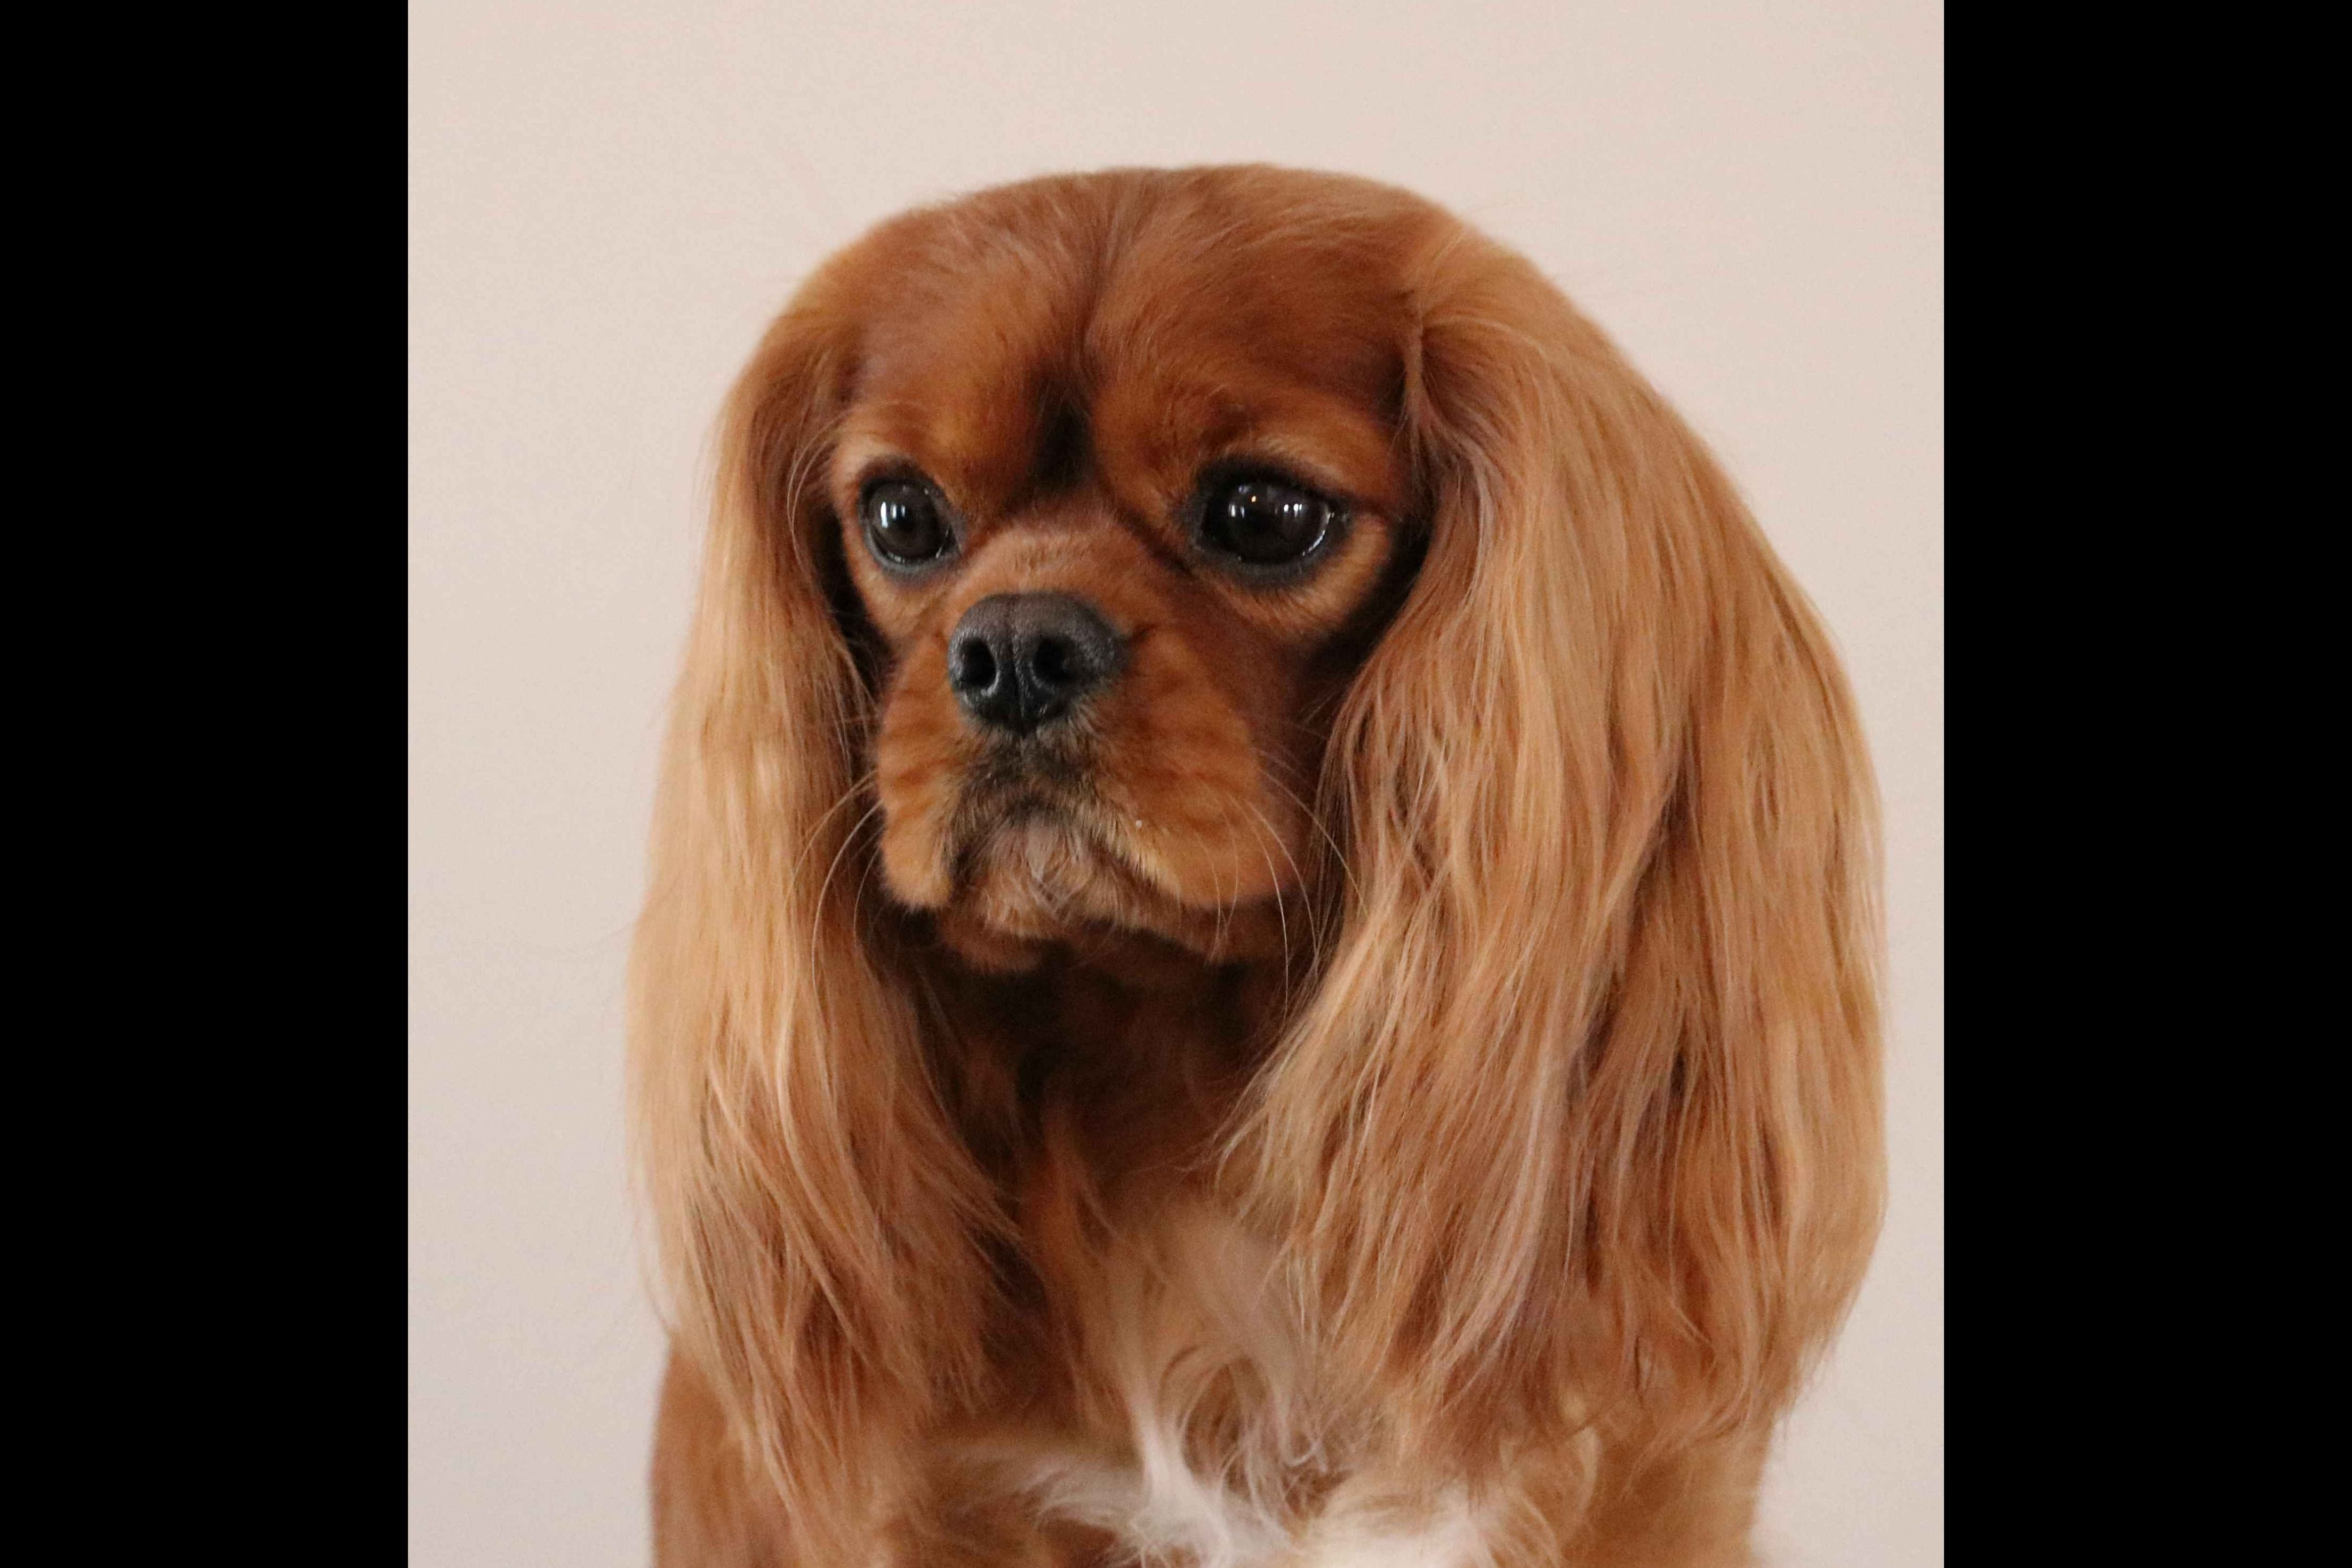 Suzanne Oliver Has Cavalier King Charles Spaniel Puppies For Sale In Ringgold Ga Spaniel Puppies For Sale King Charles Cavalier Spaniel Puppy Spaniel Puppies